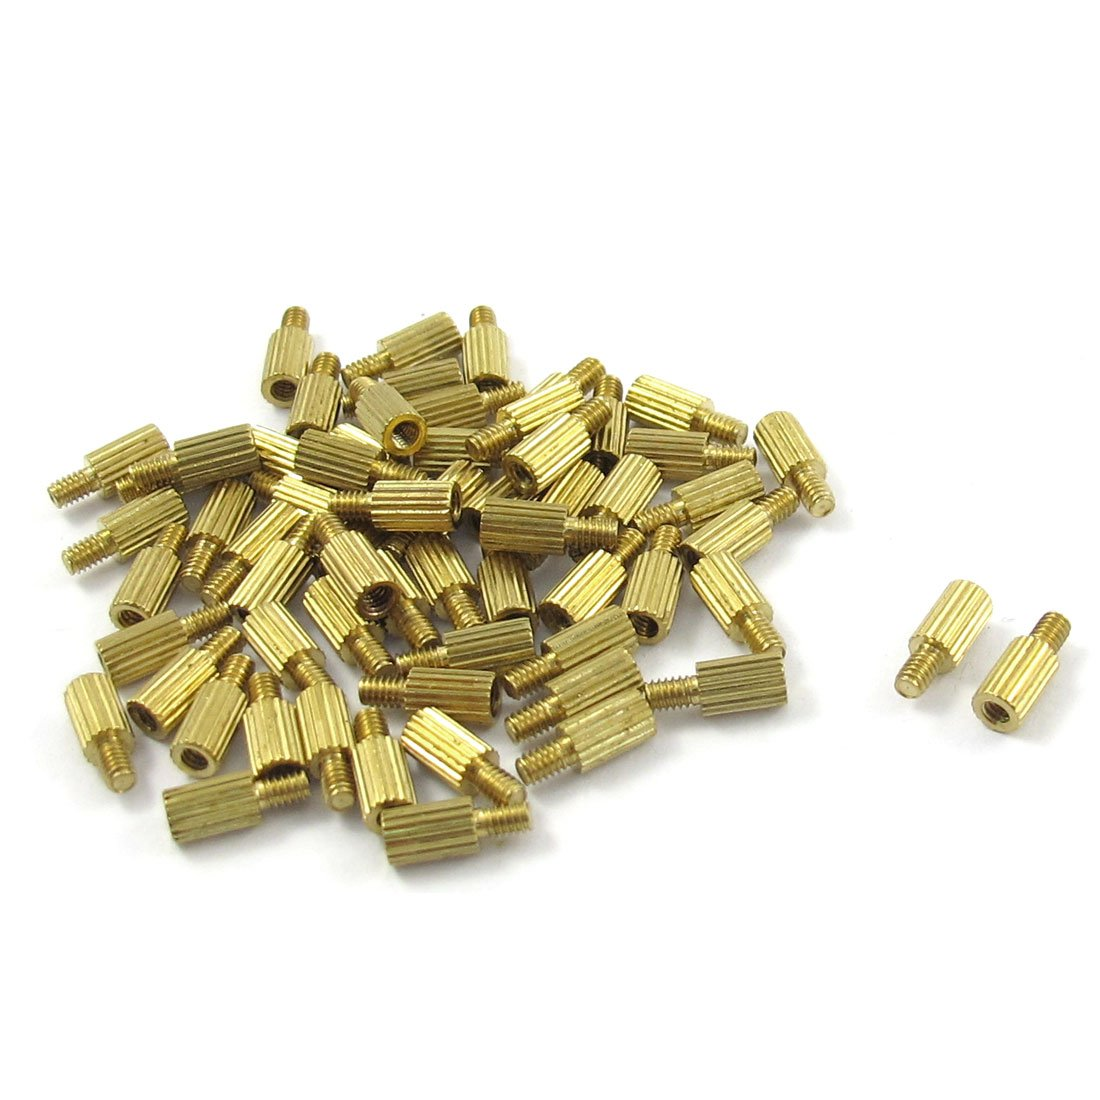 NFLC 50 Pcs Male to Female Thread Brass Pillars Standoff Spacer M2x5mmx8mm m2 3 3 1pcs brass standoff 3mm spacer standard male female brass standoffs metric thread column high quality 1 piece sale